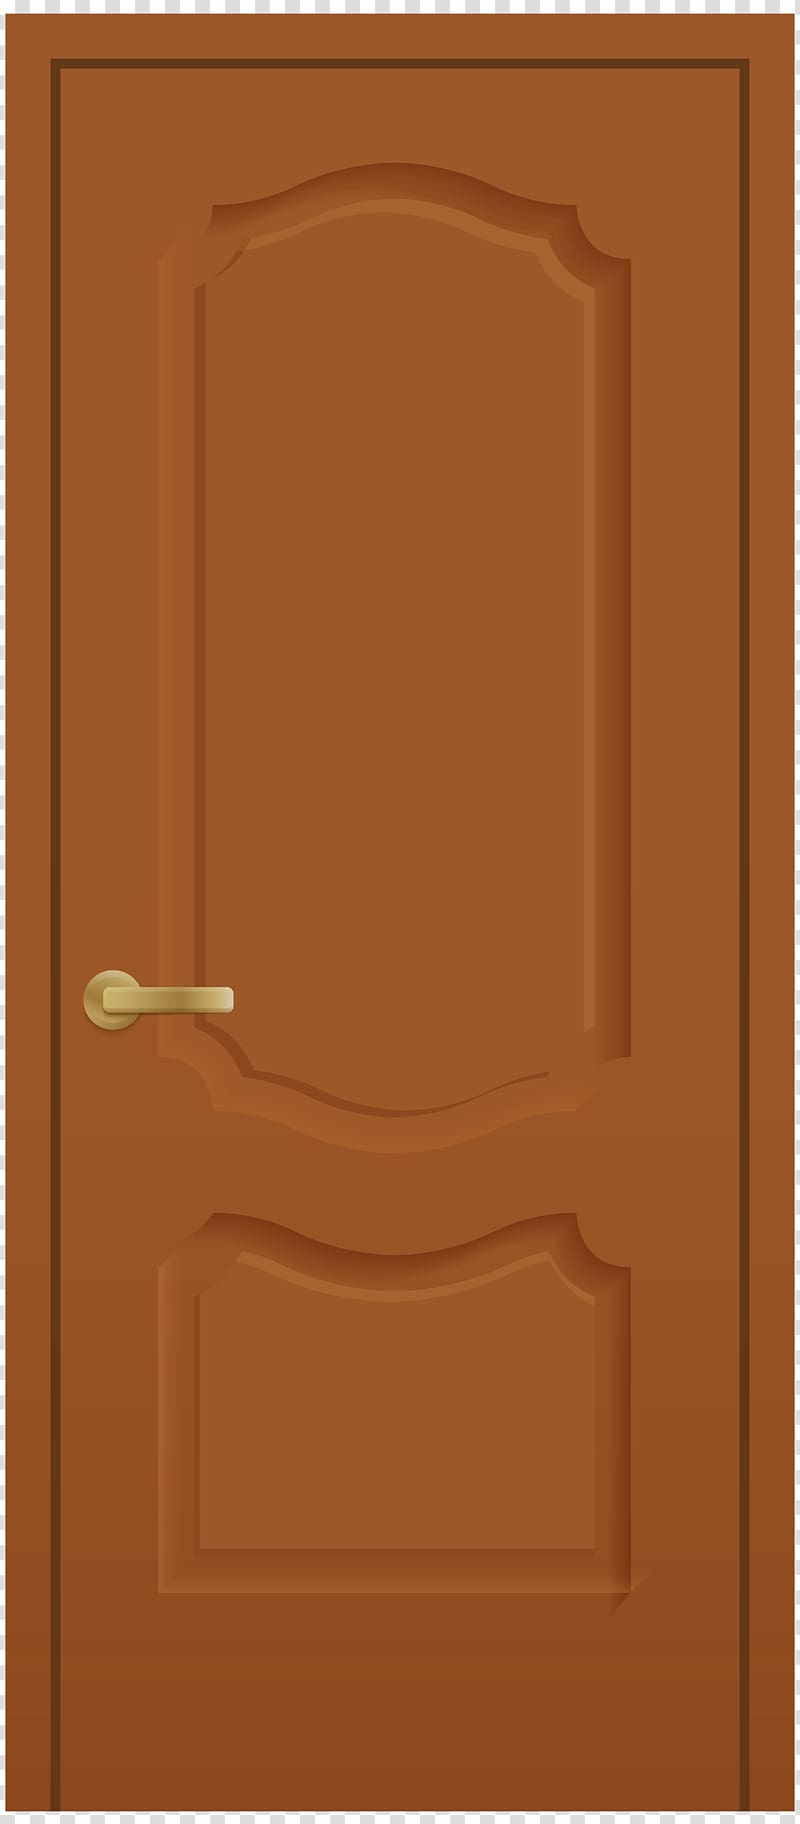 Door Window , open door transparent background PNG clipart.